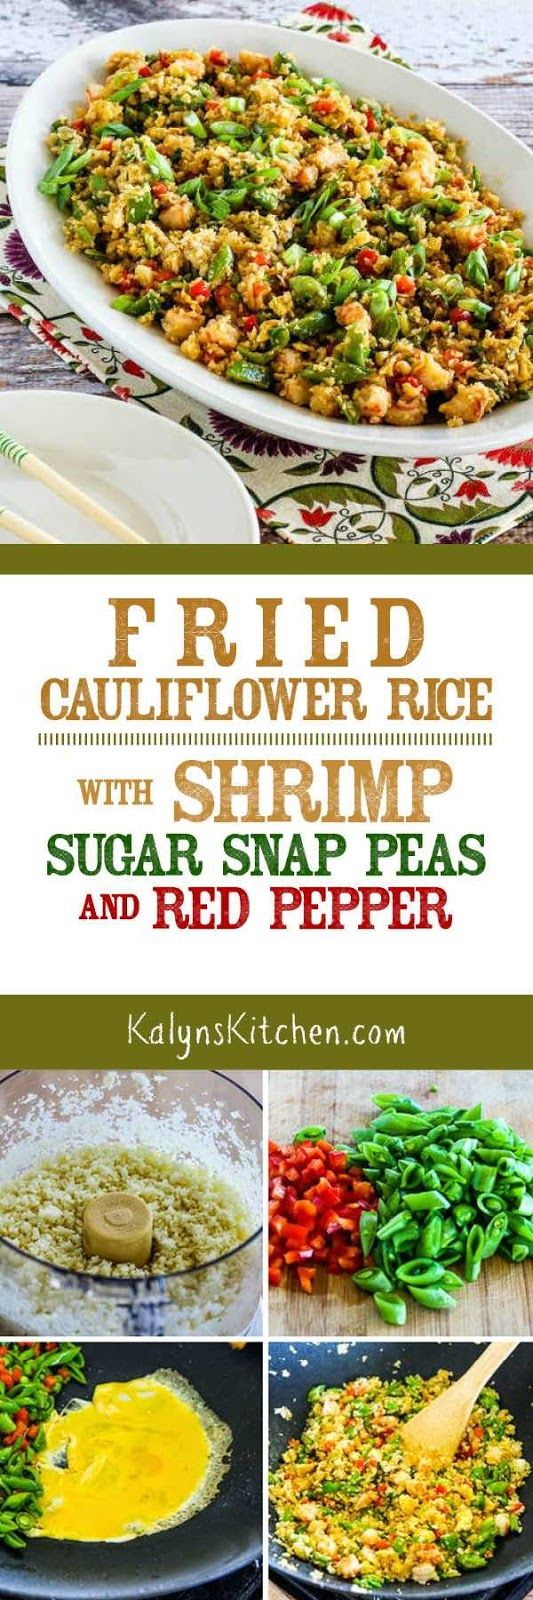 If you love fried rice but don't want the carbs, you'll love this Fried Cauliflower Rice with Shrimp, Sugar Snap Peas, and Red Pepper. This delicious faux fried rice is low-carb, Keto, low-glycemic, and South Beach Diet friendly, and it can easily be gluten-free or Paleo with the right ingredient choices. [found on KalynsKitchen.com] #CauliflowerFriedRice #CauliflowerFriedRiceShrimp #CauliflowerRice